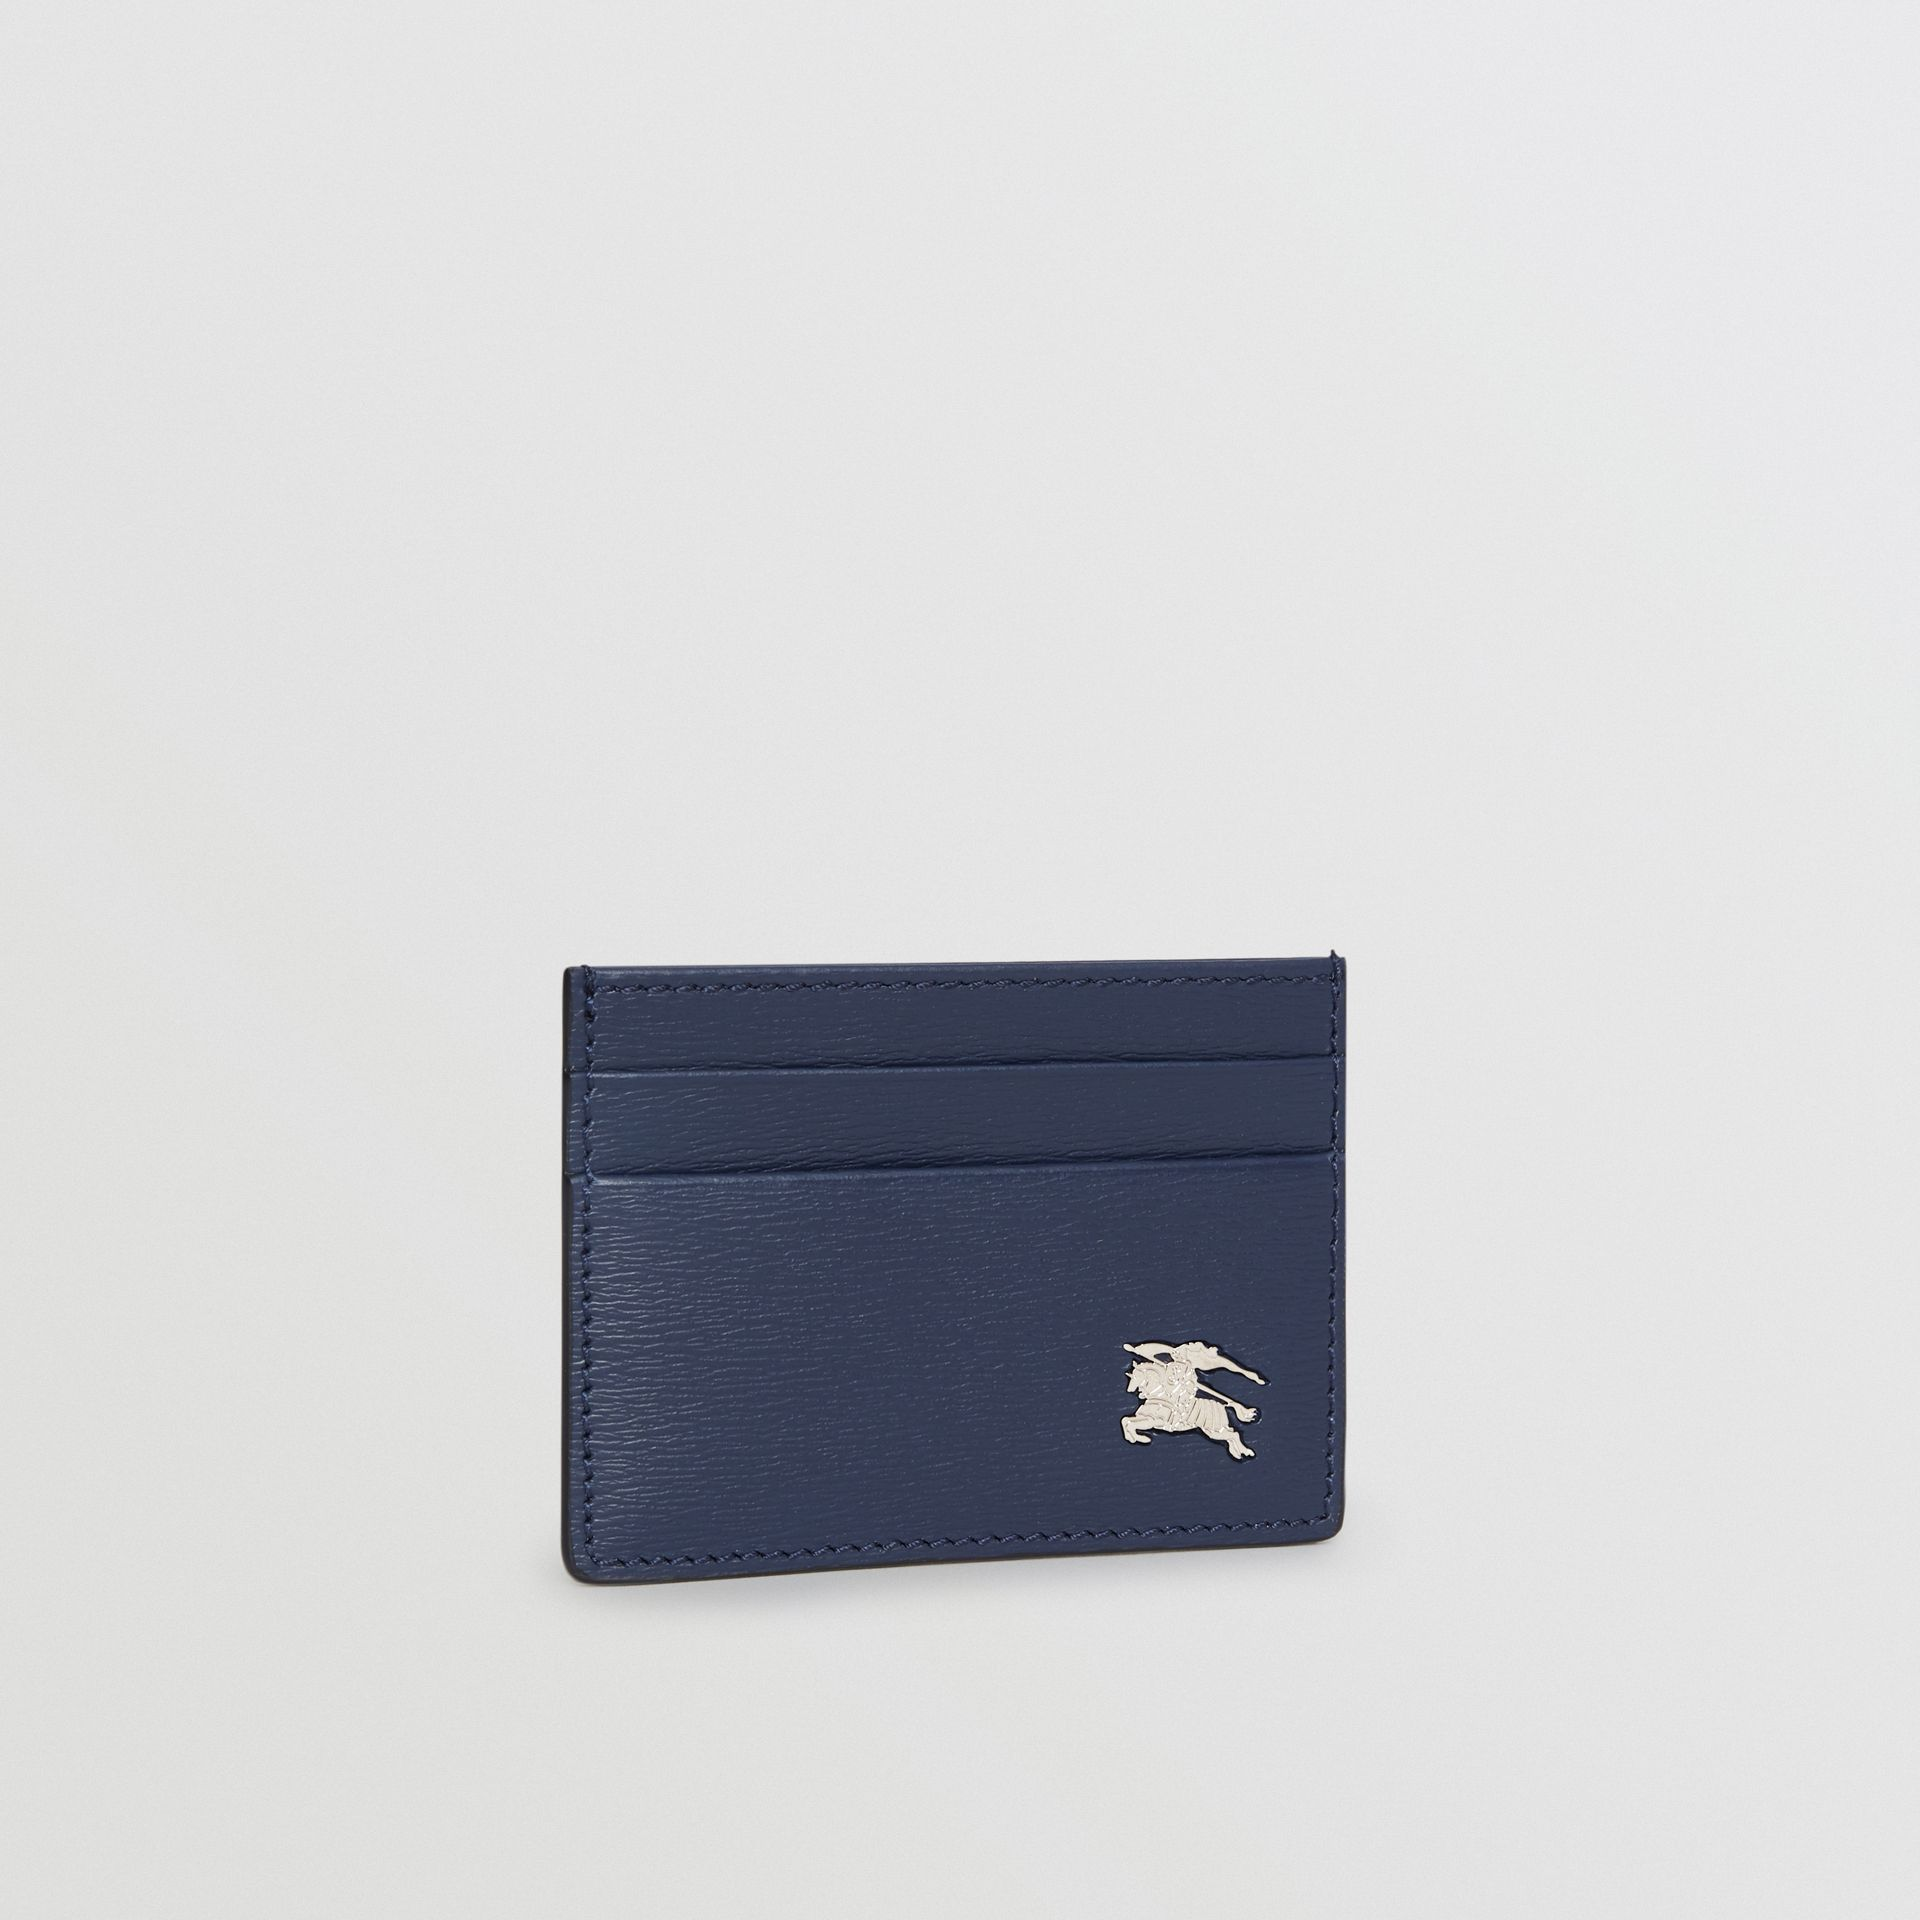 London Leather Card Case in Navy - Men | Burberry United Kingdom - gallery image 3